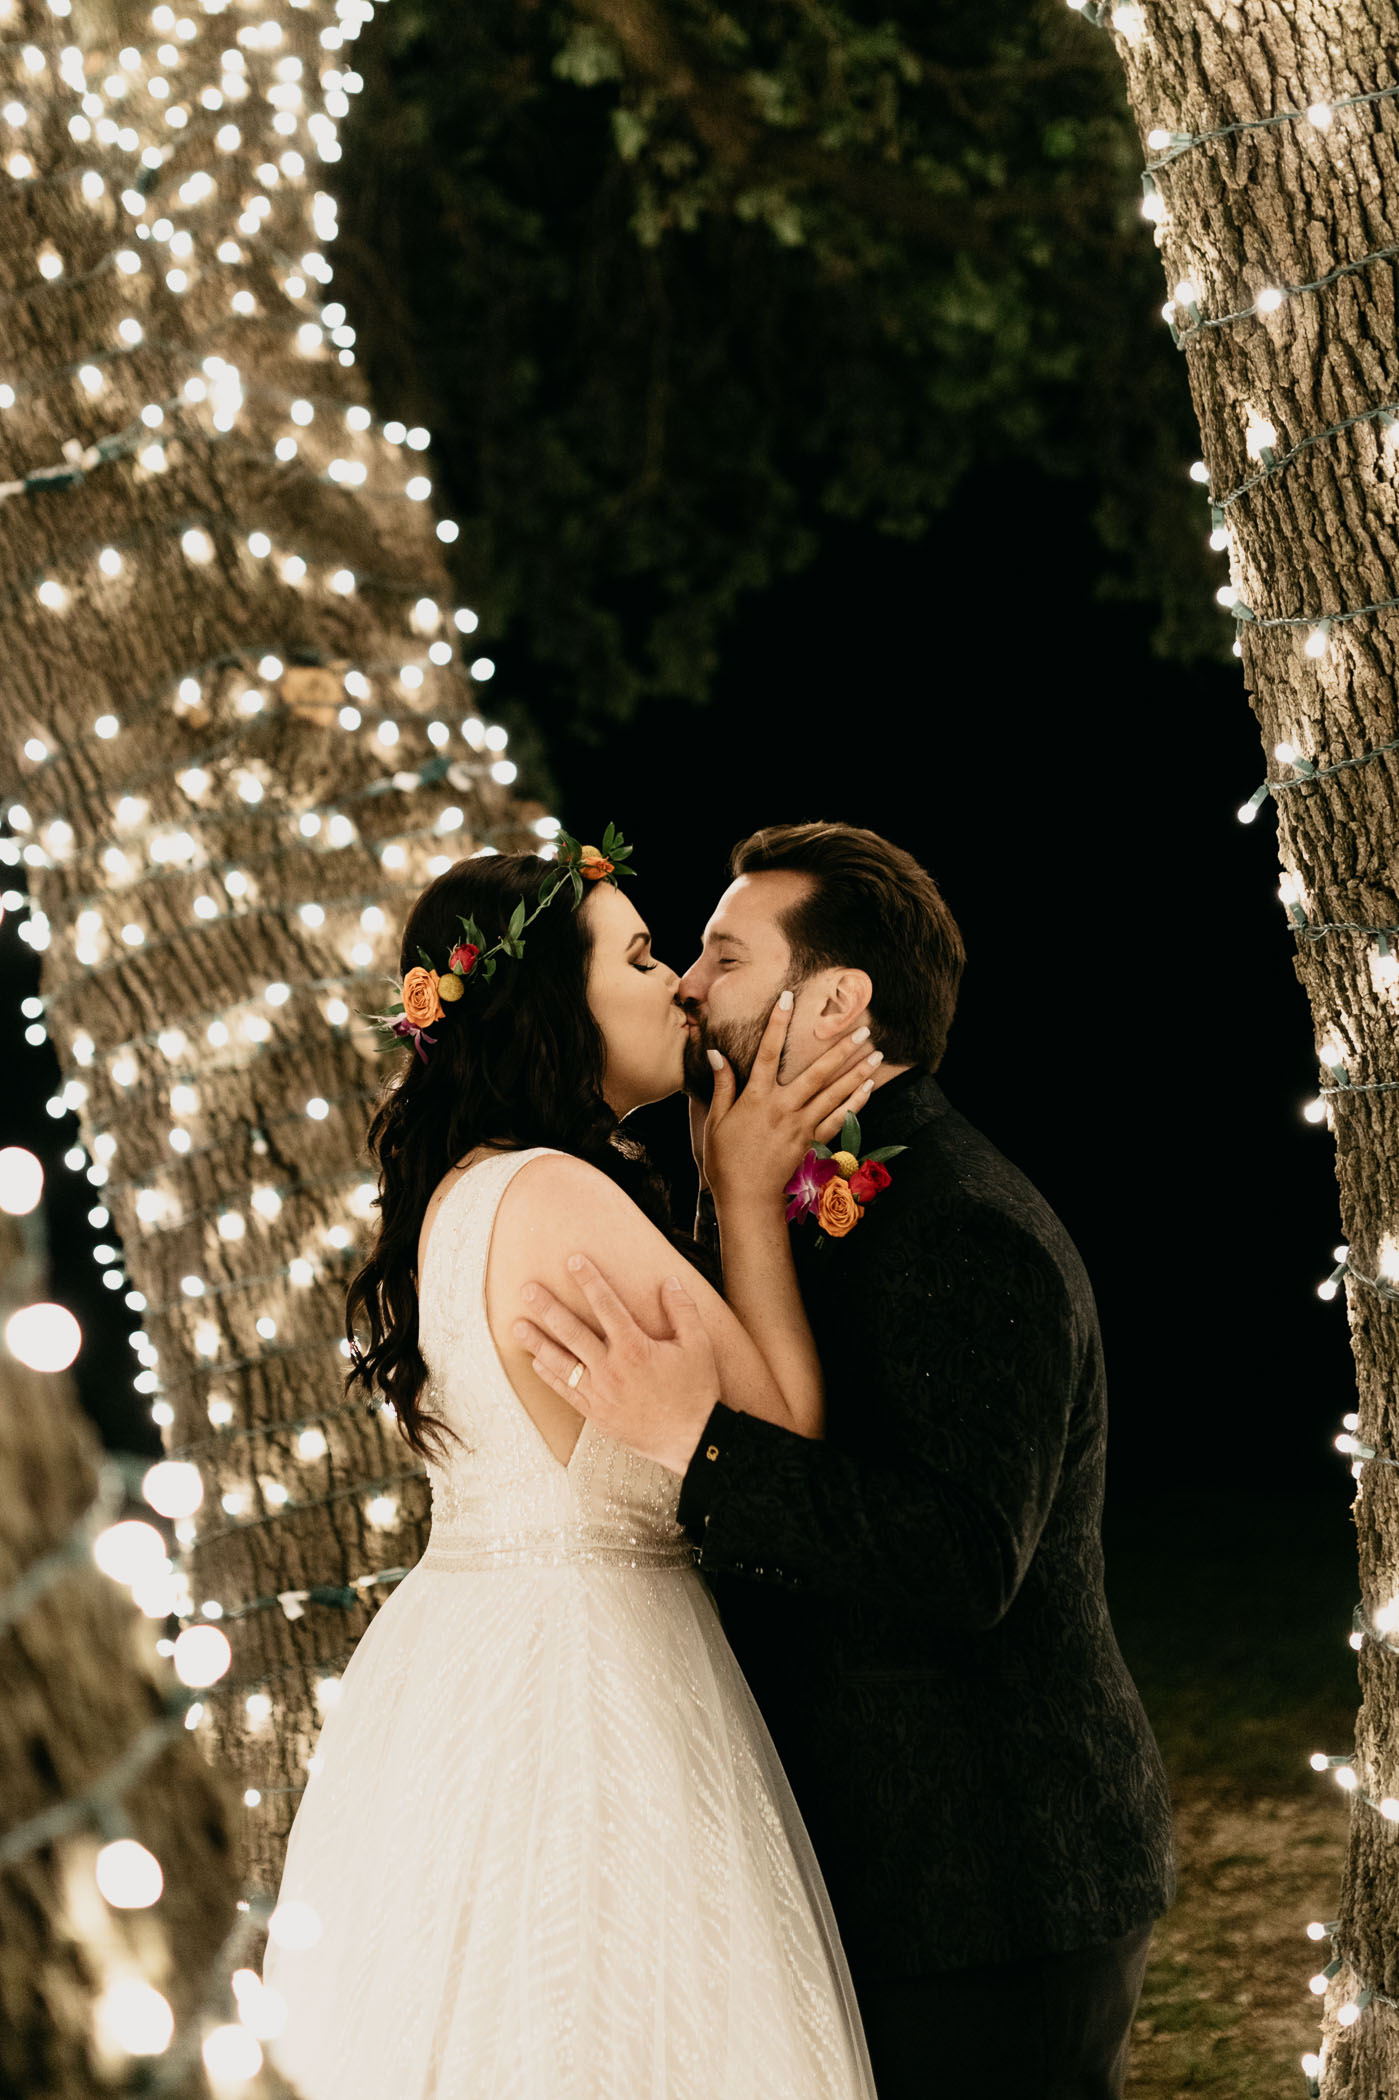 Bride and groom kissing at their night time elopement ceremony